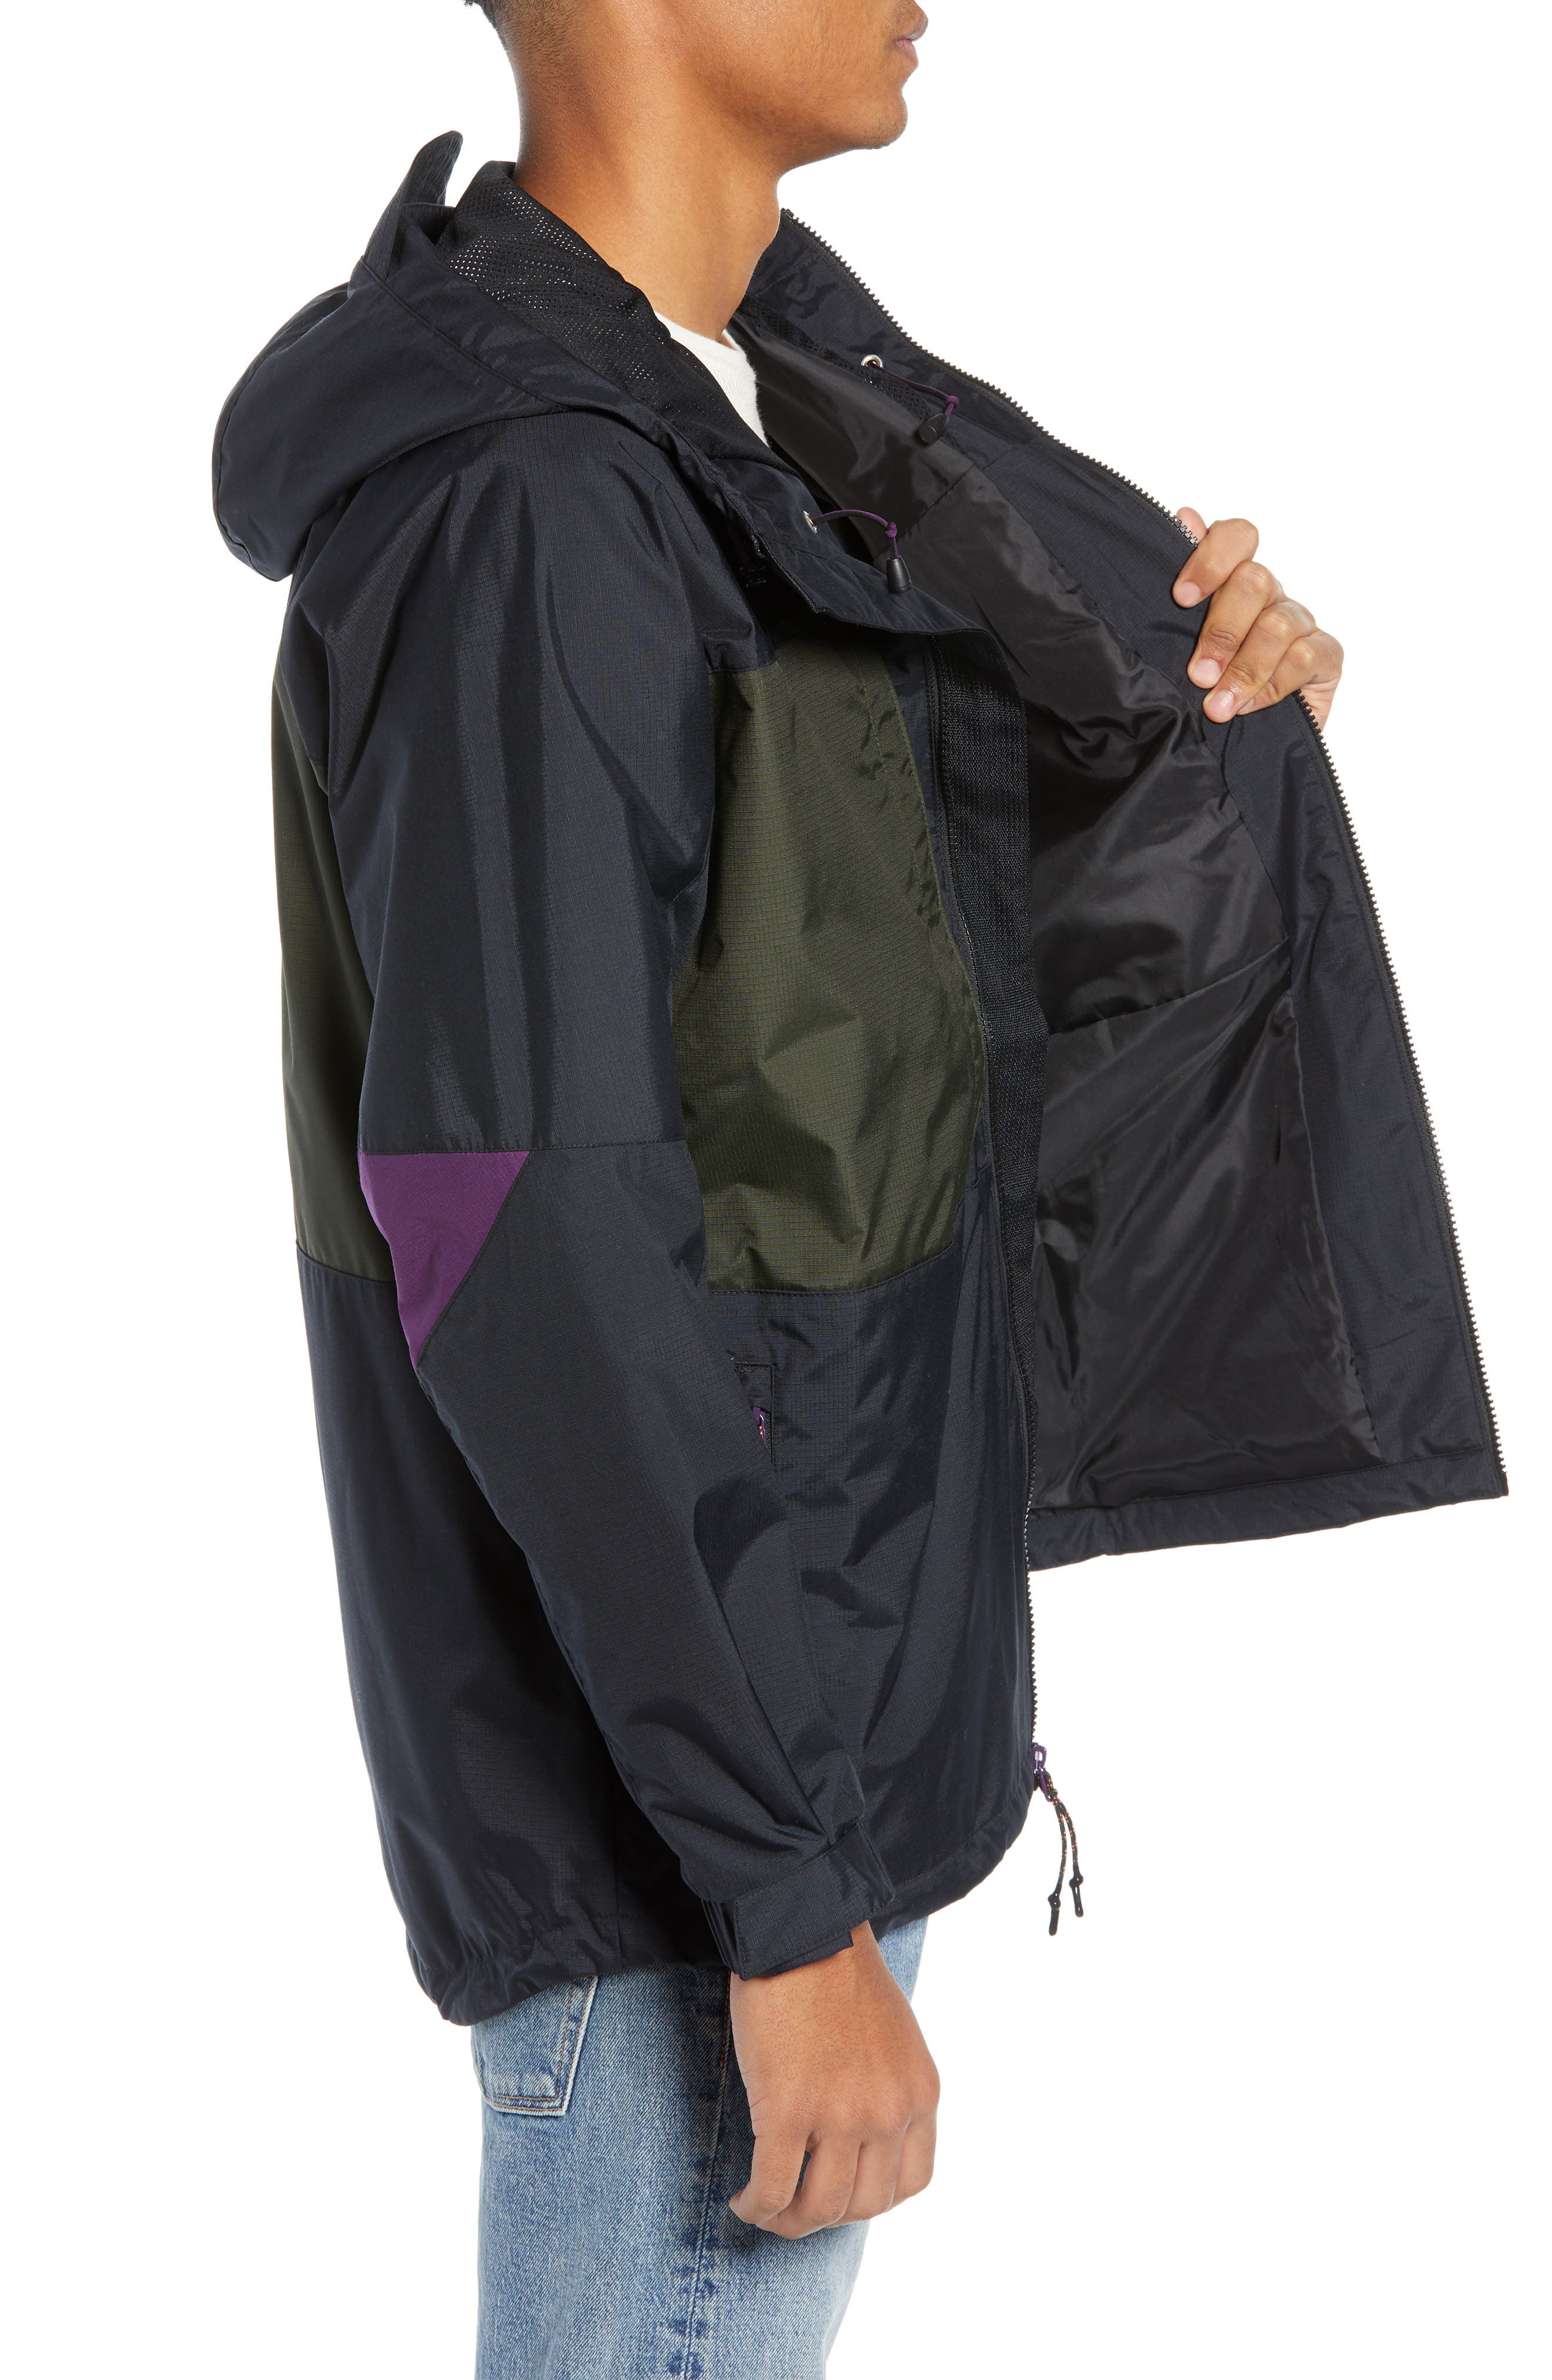 ACG Men's Anorak Jacket,                             Alternate thumbnail 3, color,                             BLACK/ SEQUOIA/ BLACK